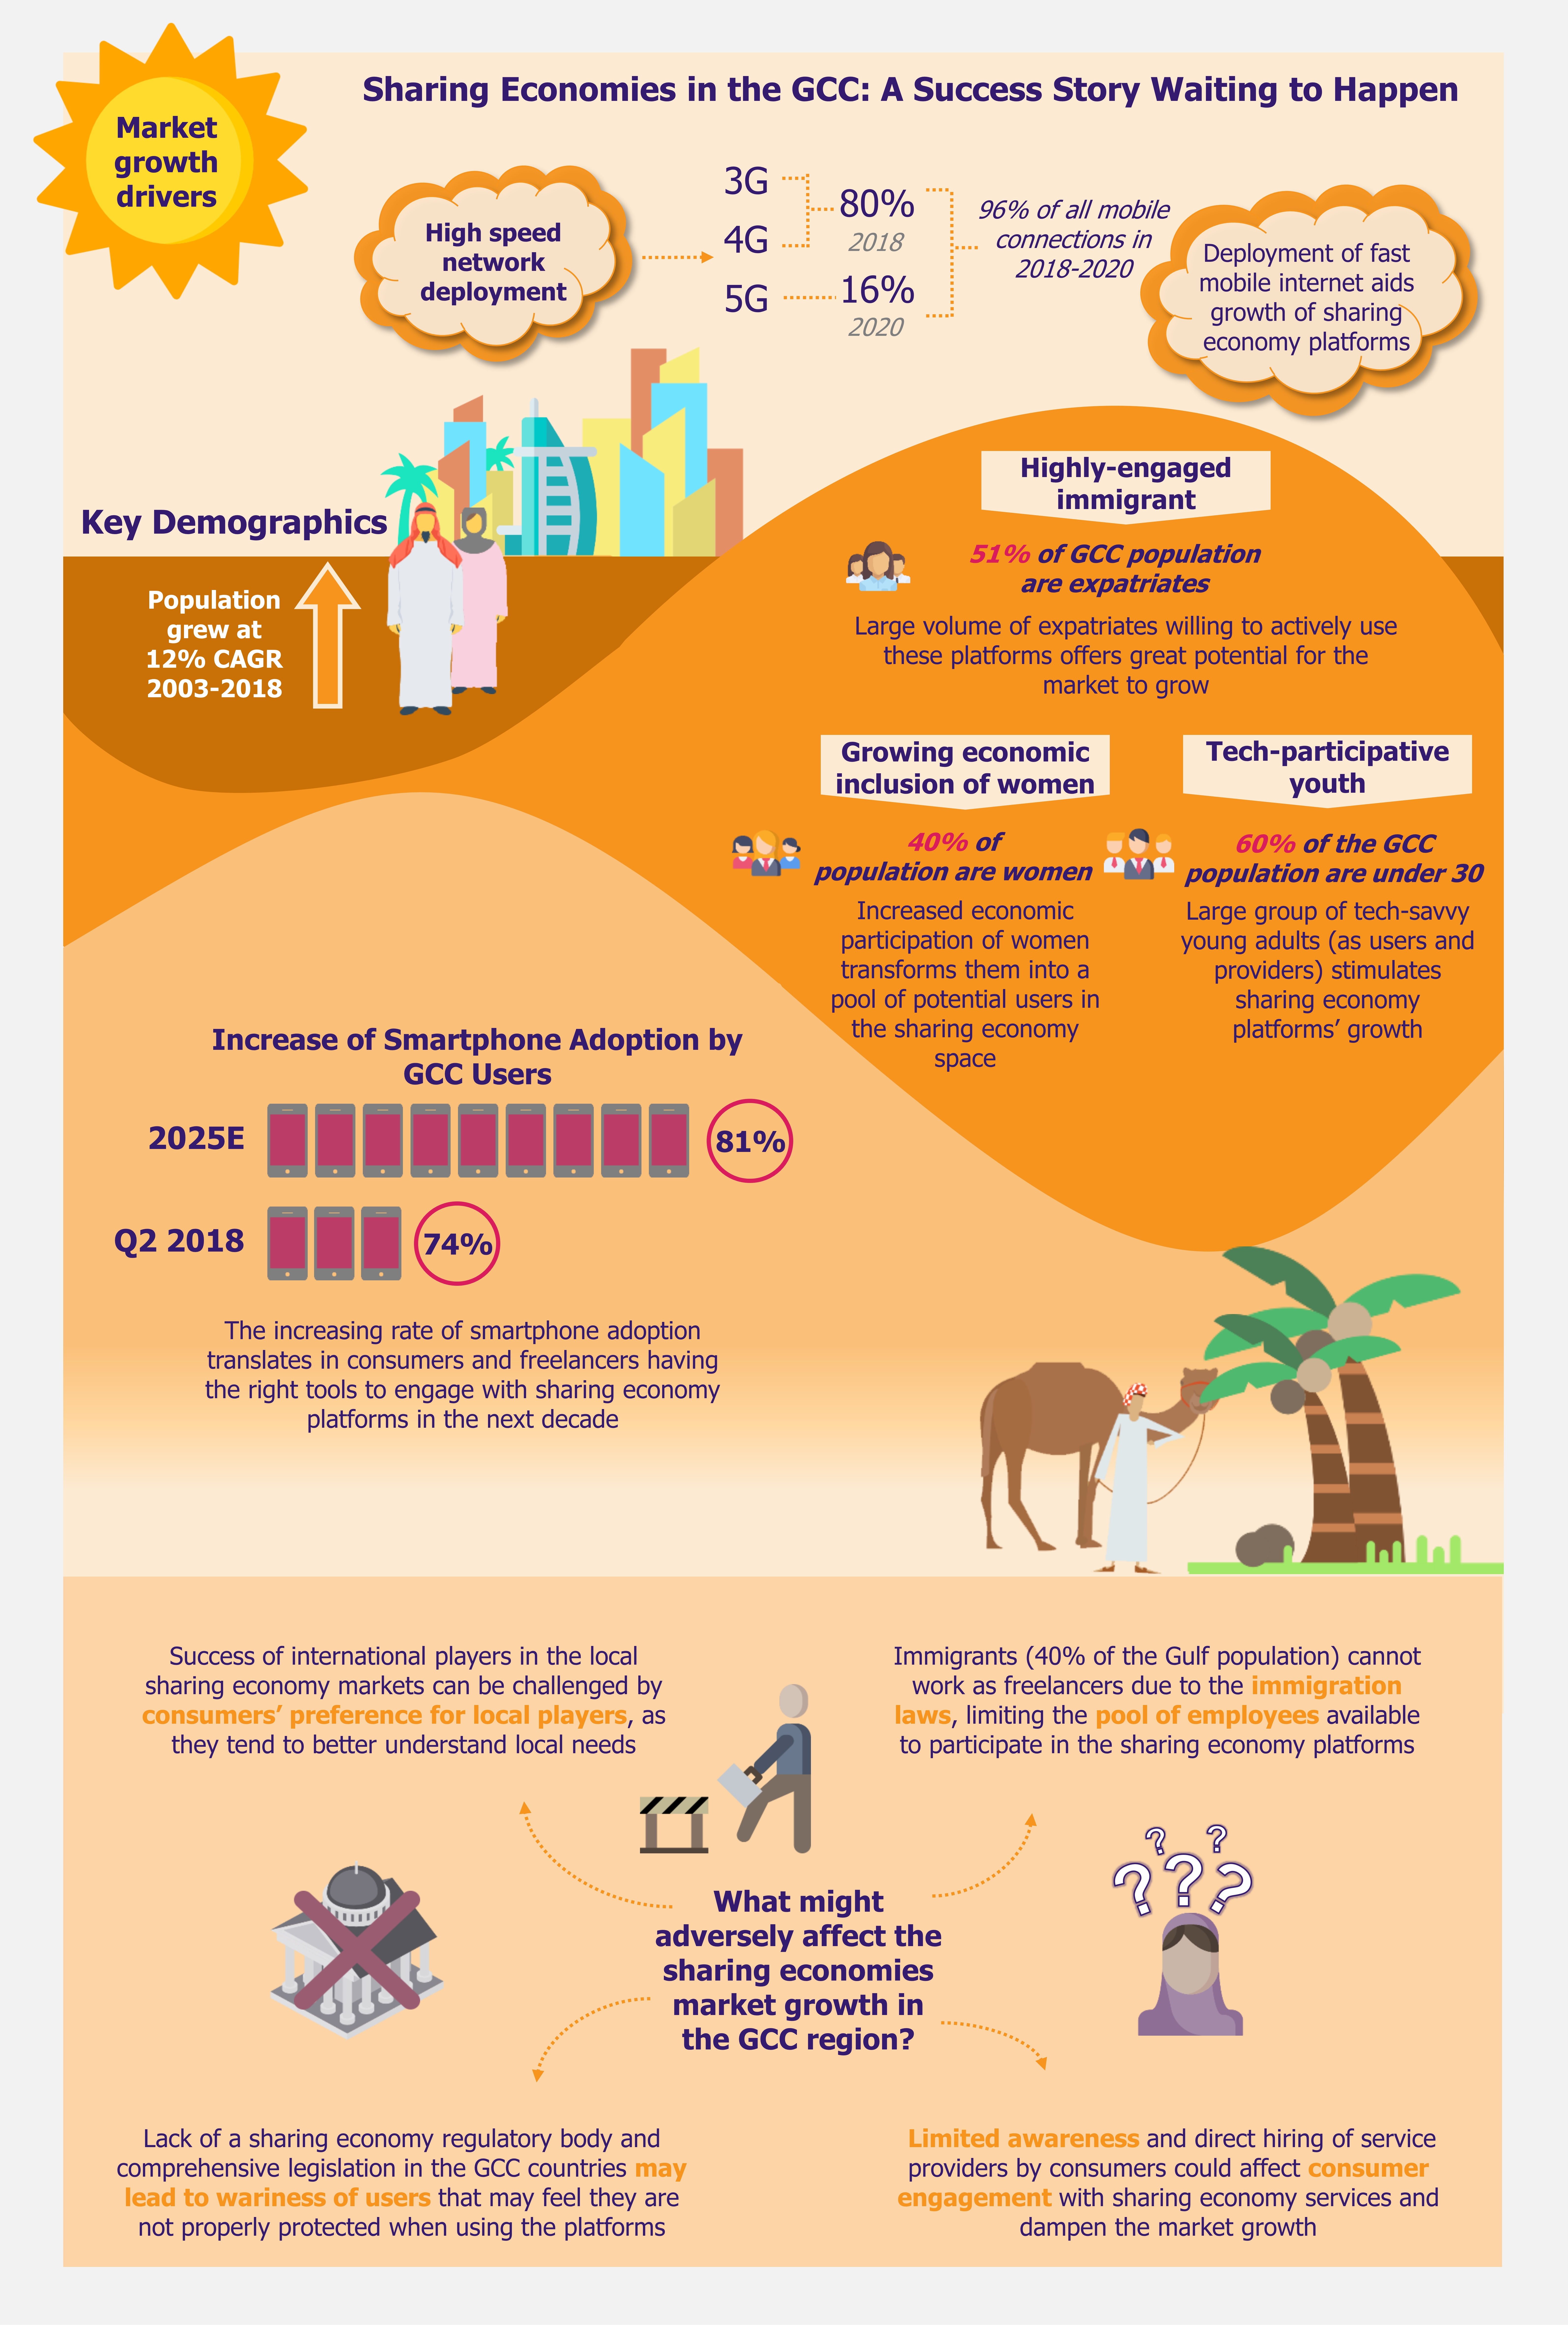 Sharing Economy in the GCC A Success Story Waiting to Happen